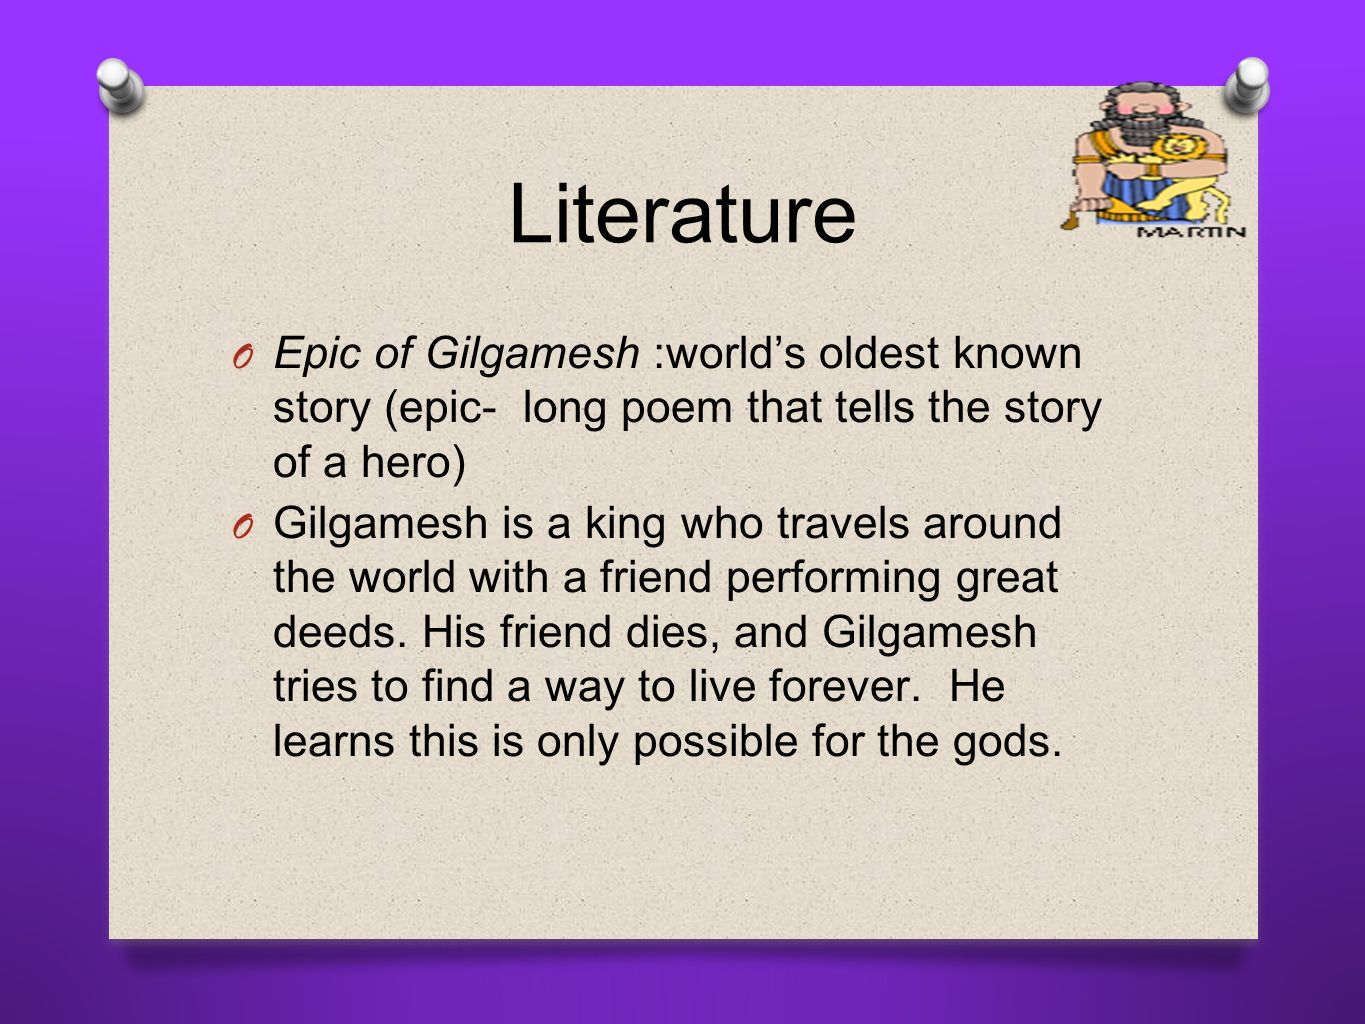 what makes the story of gilgamesh What makes the story of gilgamesh an epic gilgamesh, the hero of this epic, achieves many feats of skill, which makes him famous, but that is not the reason it is an epic the epic of gilgamesh fulfills the requirements of an epic by being consistently relevant to a human society and has specific.